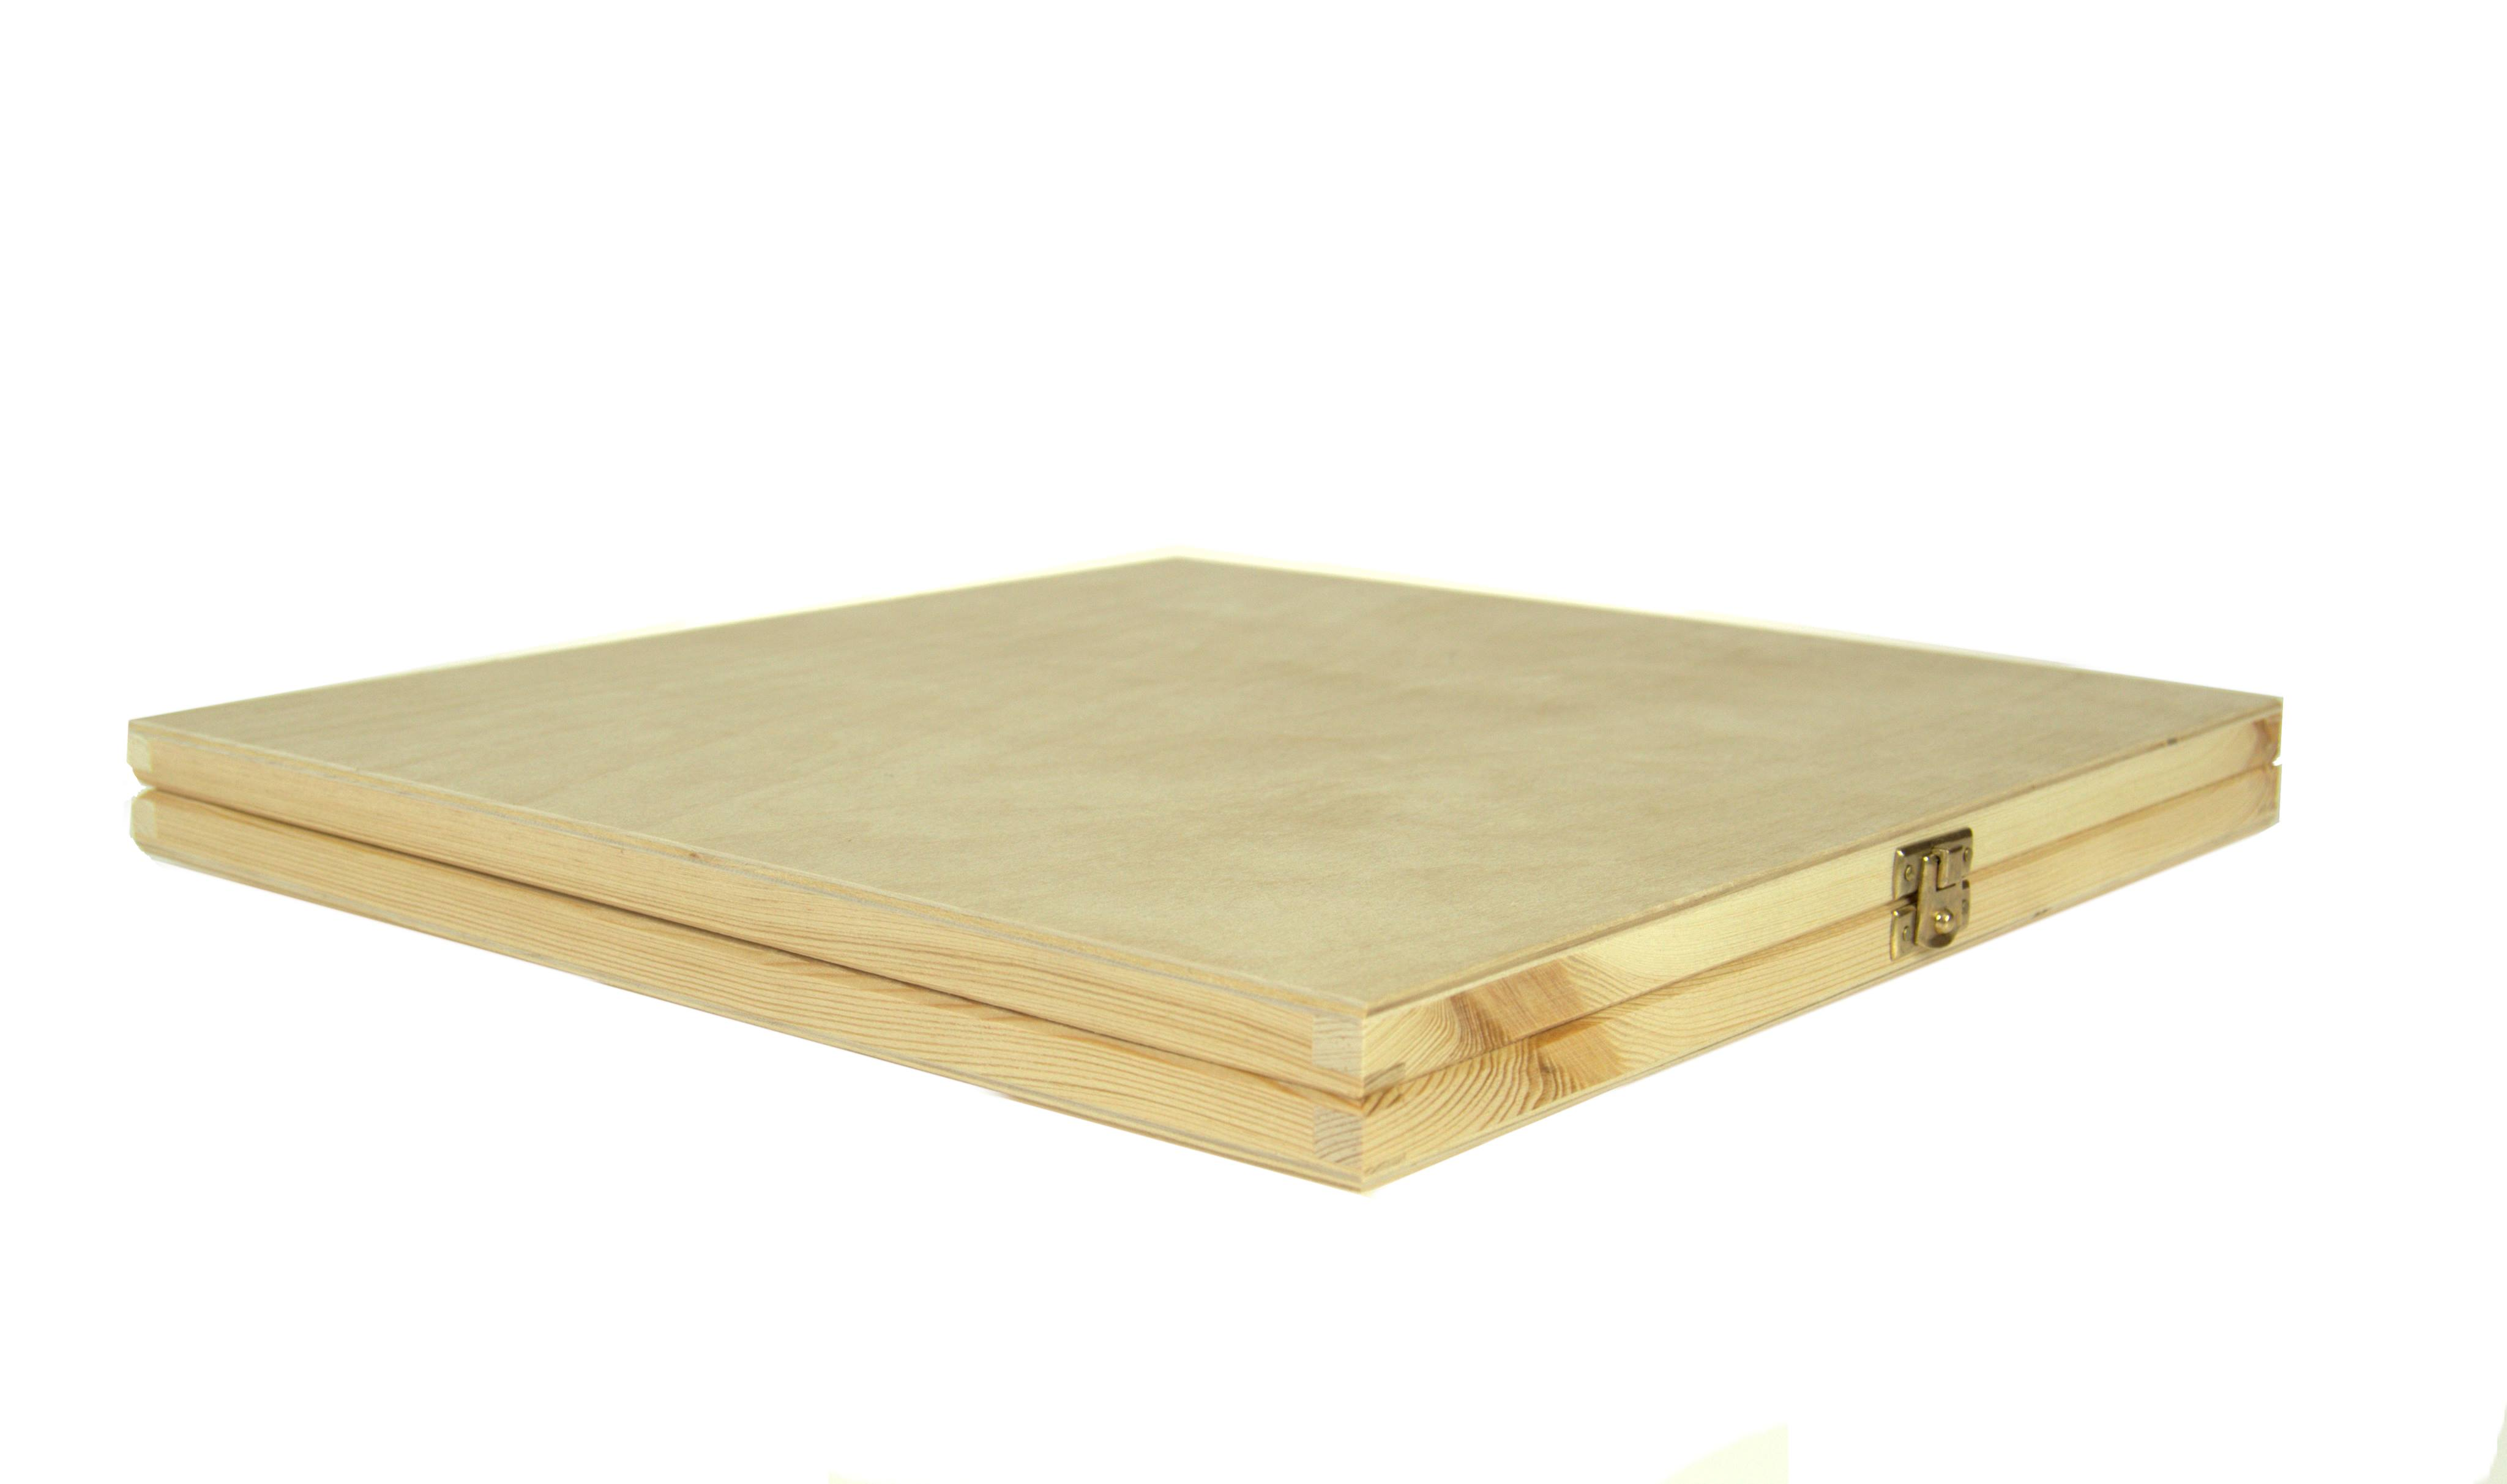 Flat square wooden box for vinyls